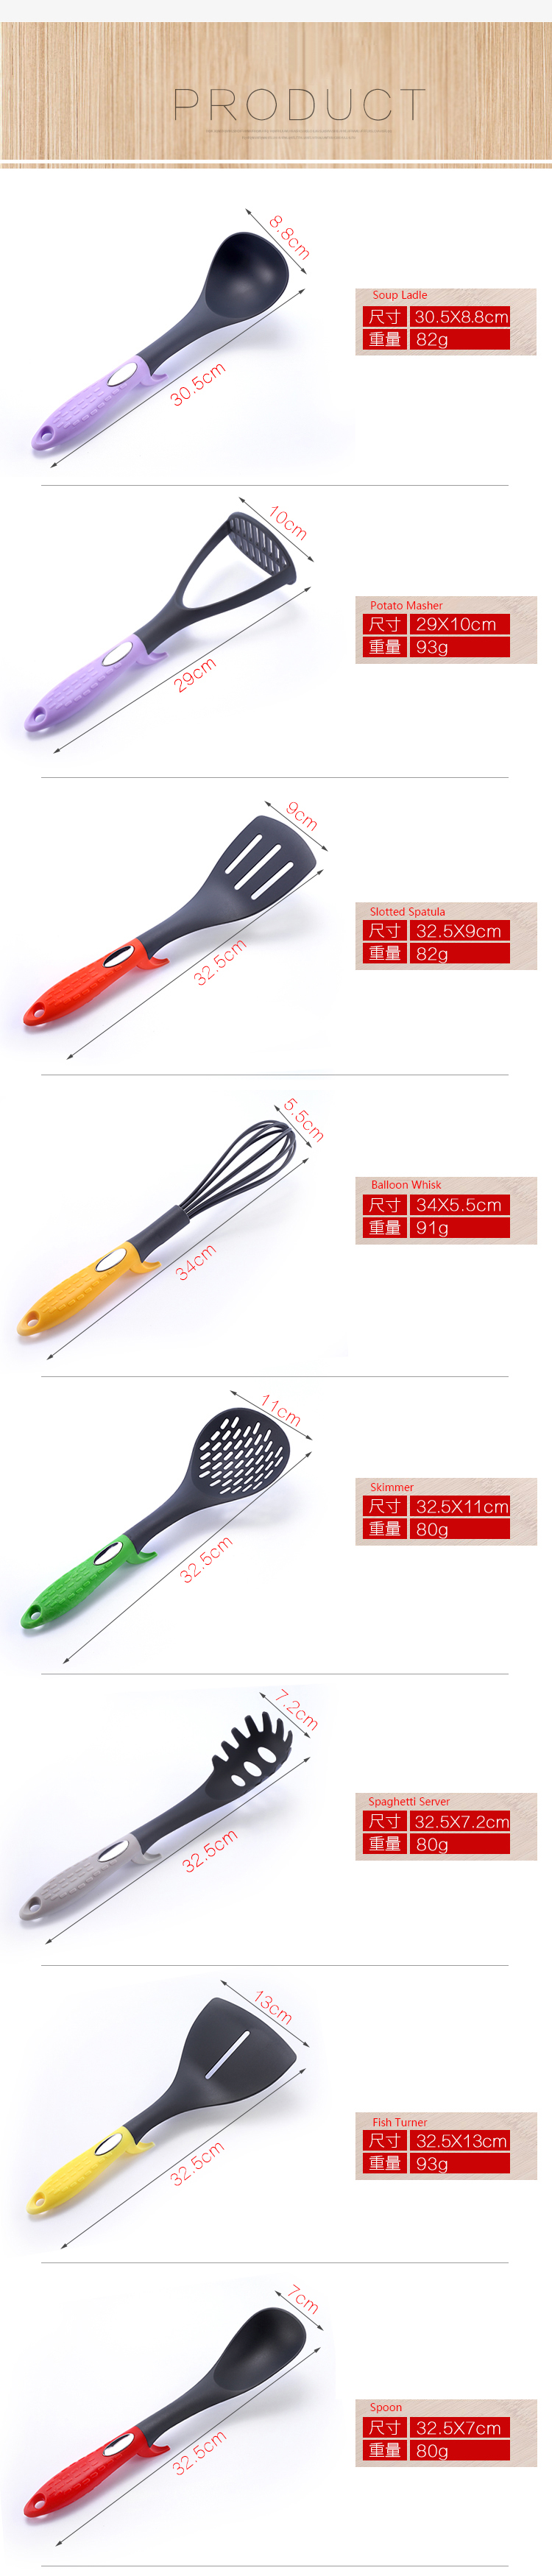 YQ001 products supply 7 pcs kitchen accessory PP handle nylon kitchen utensil set